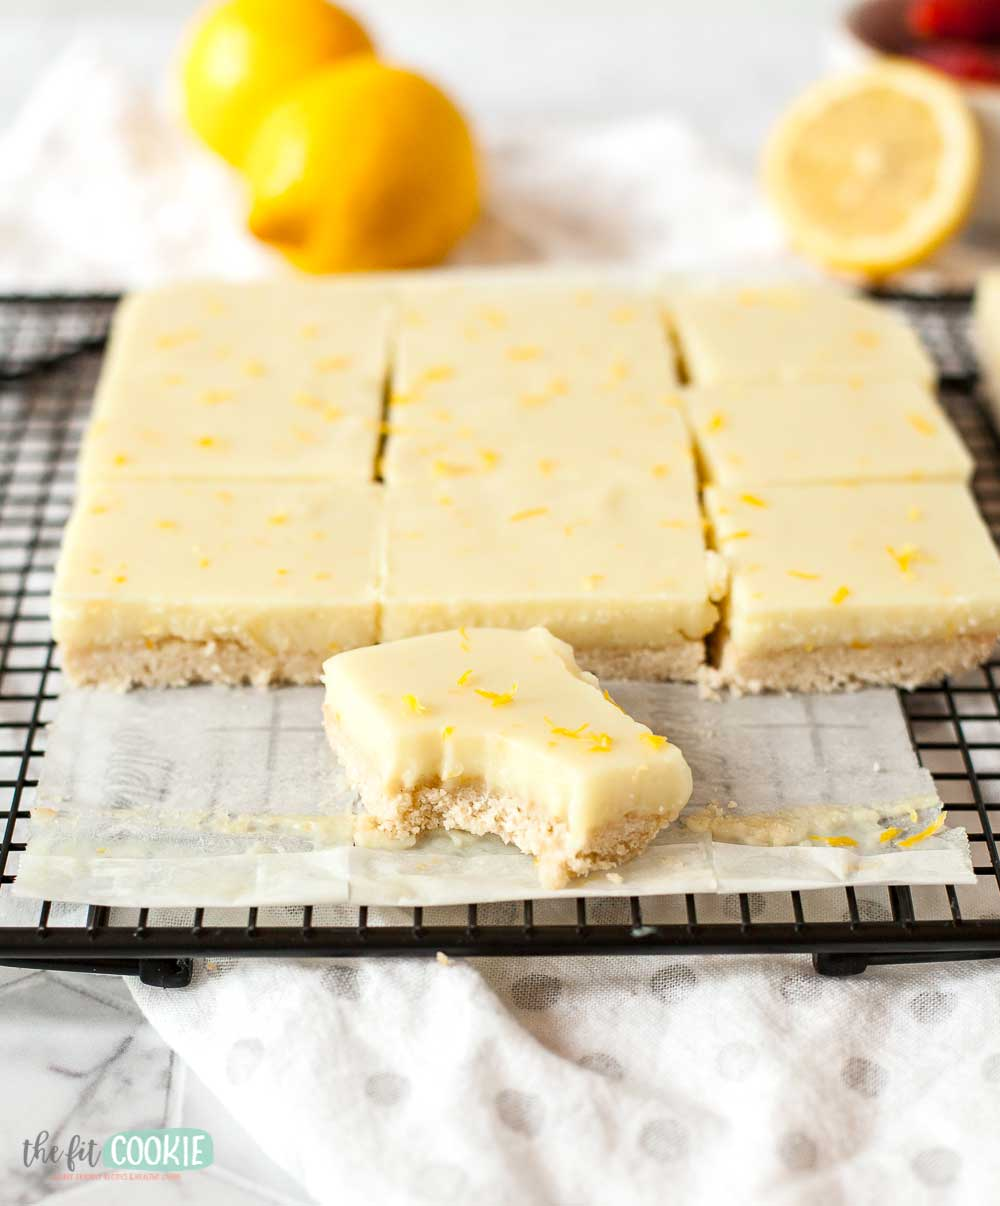 lemon bar with a bite taken